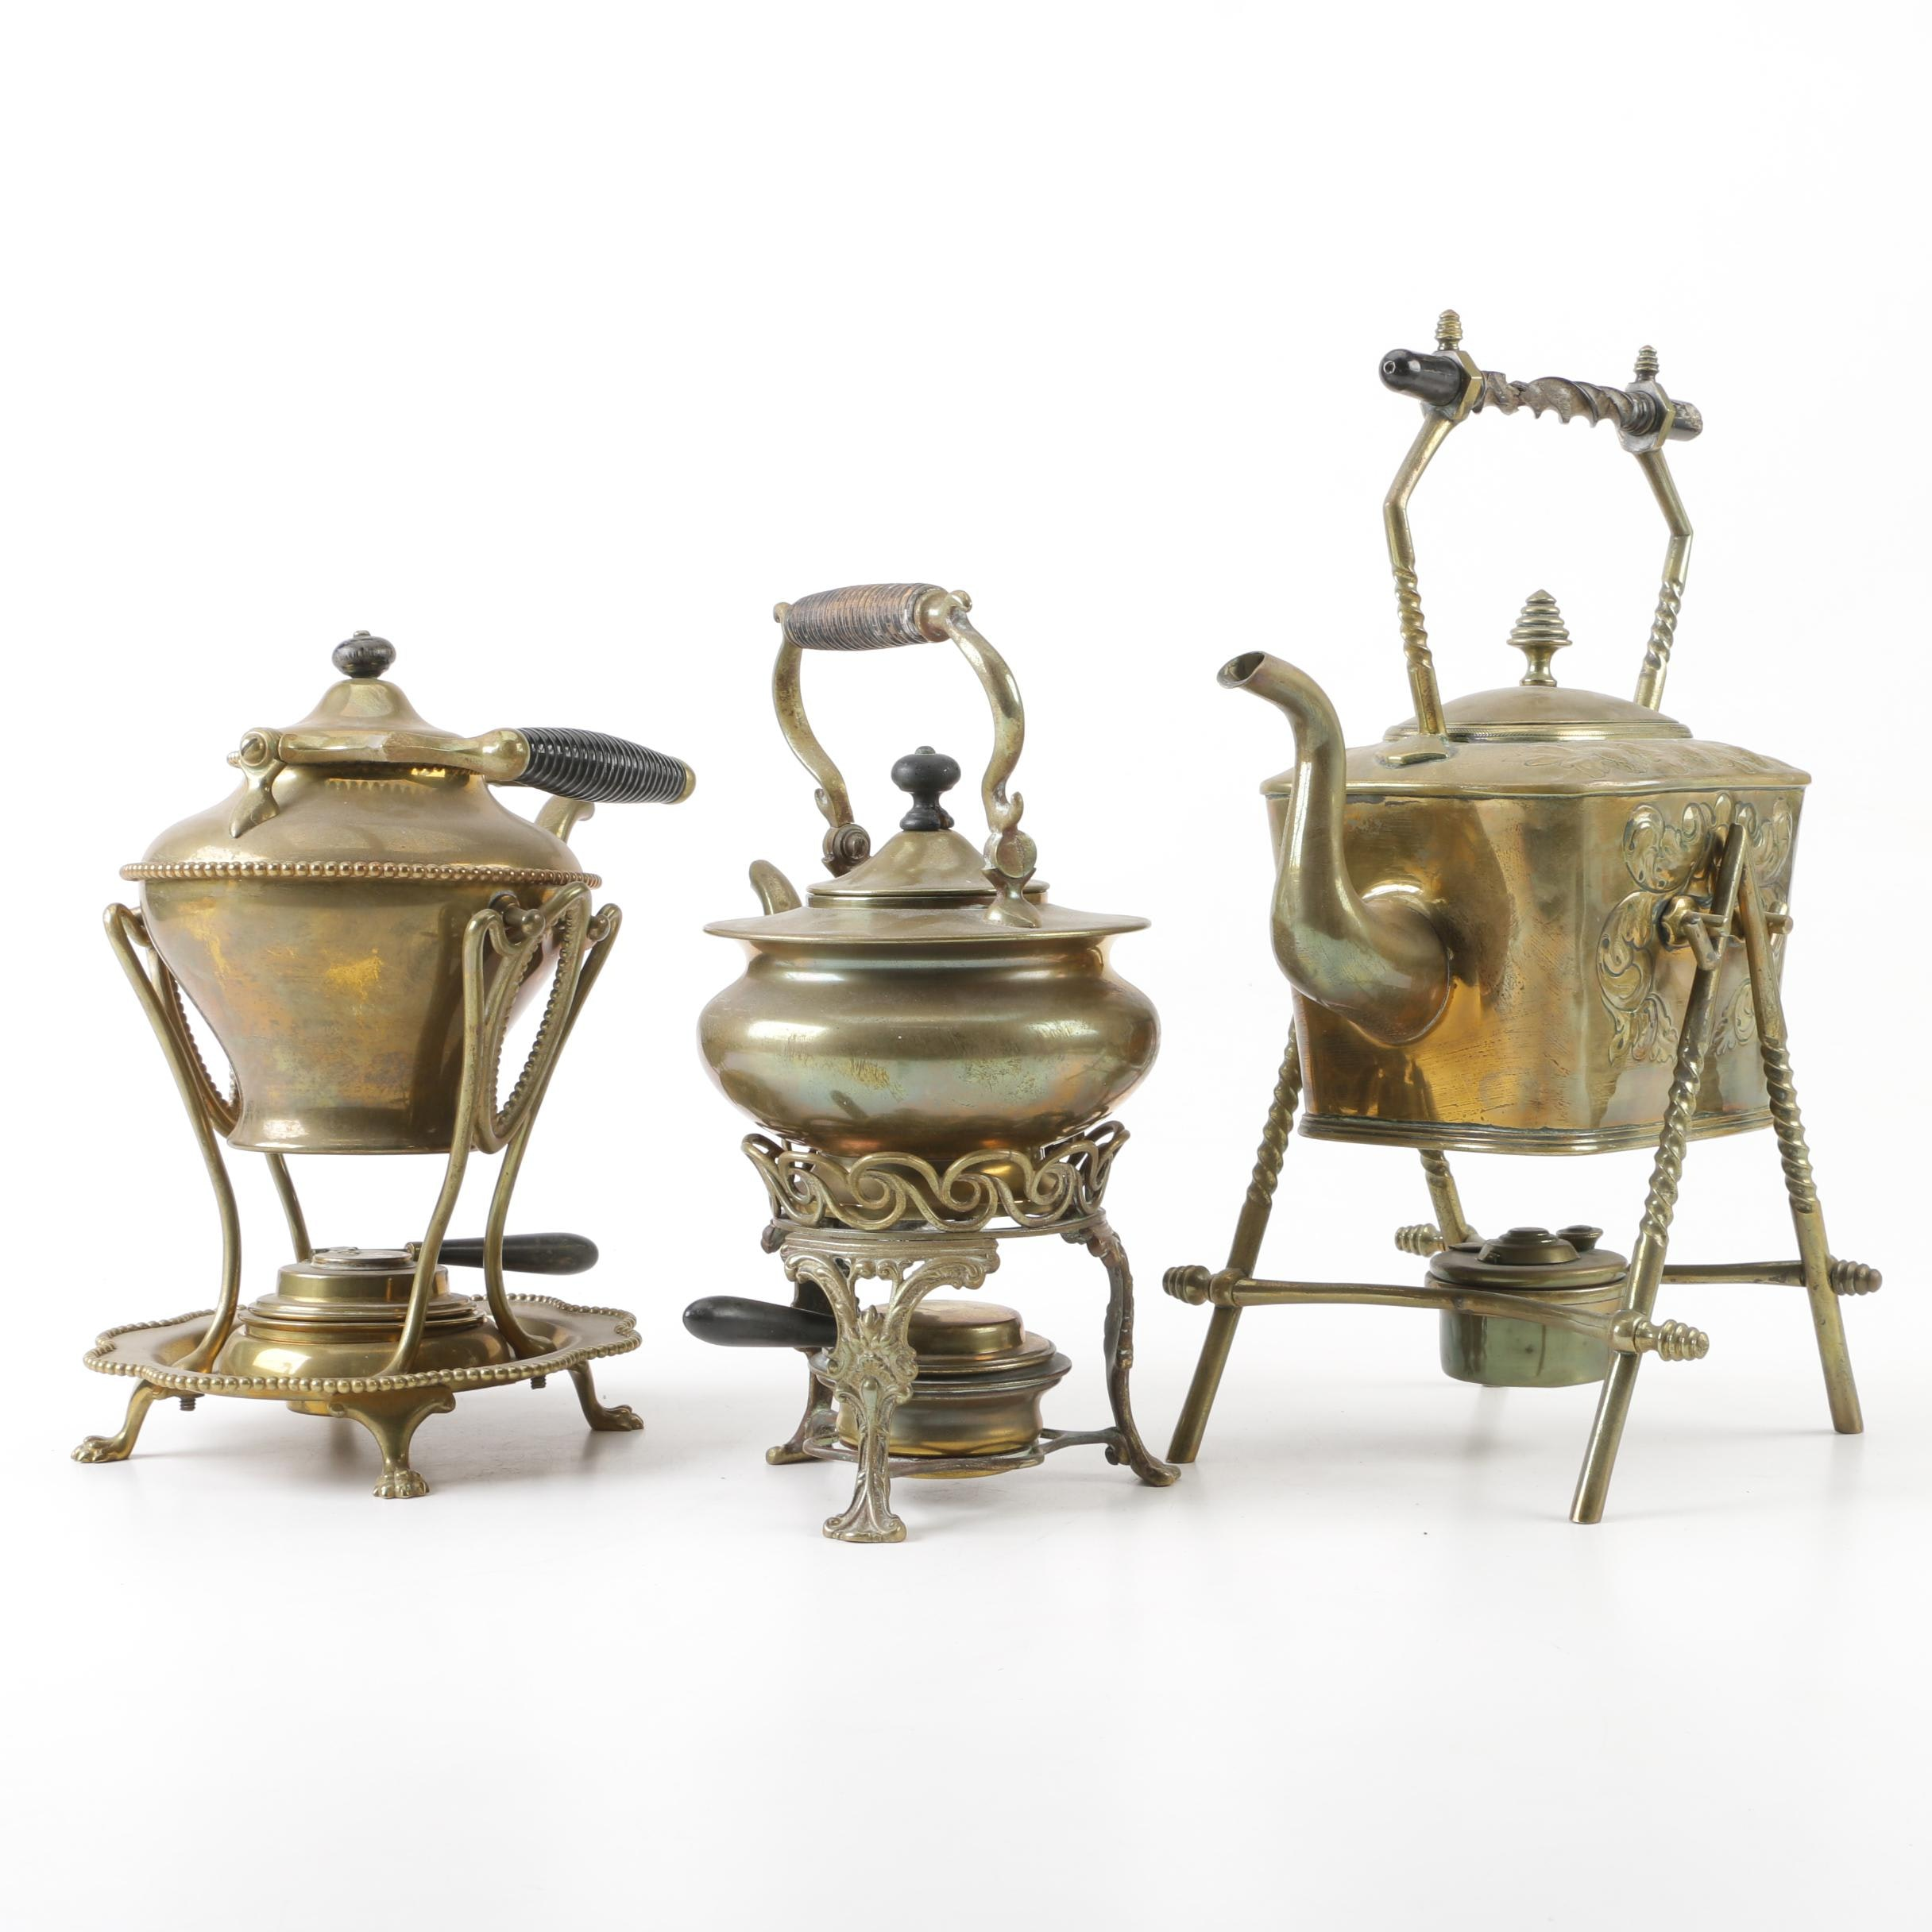 Brass Teapots with Warming Stands, Late 19th Century/ Early 20th Century